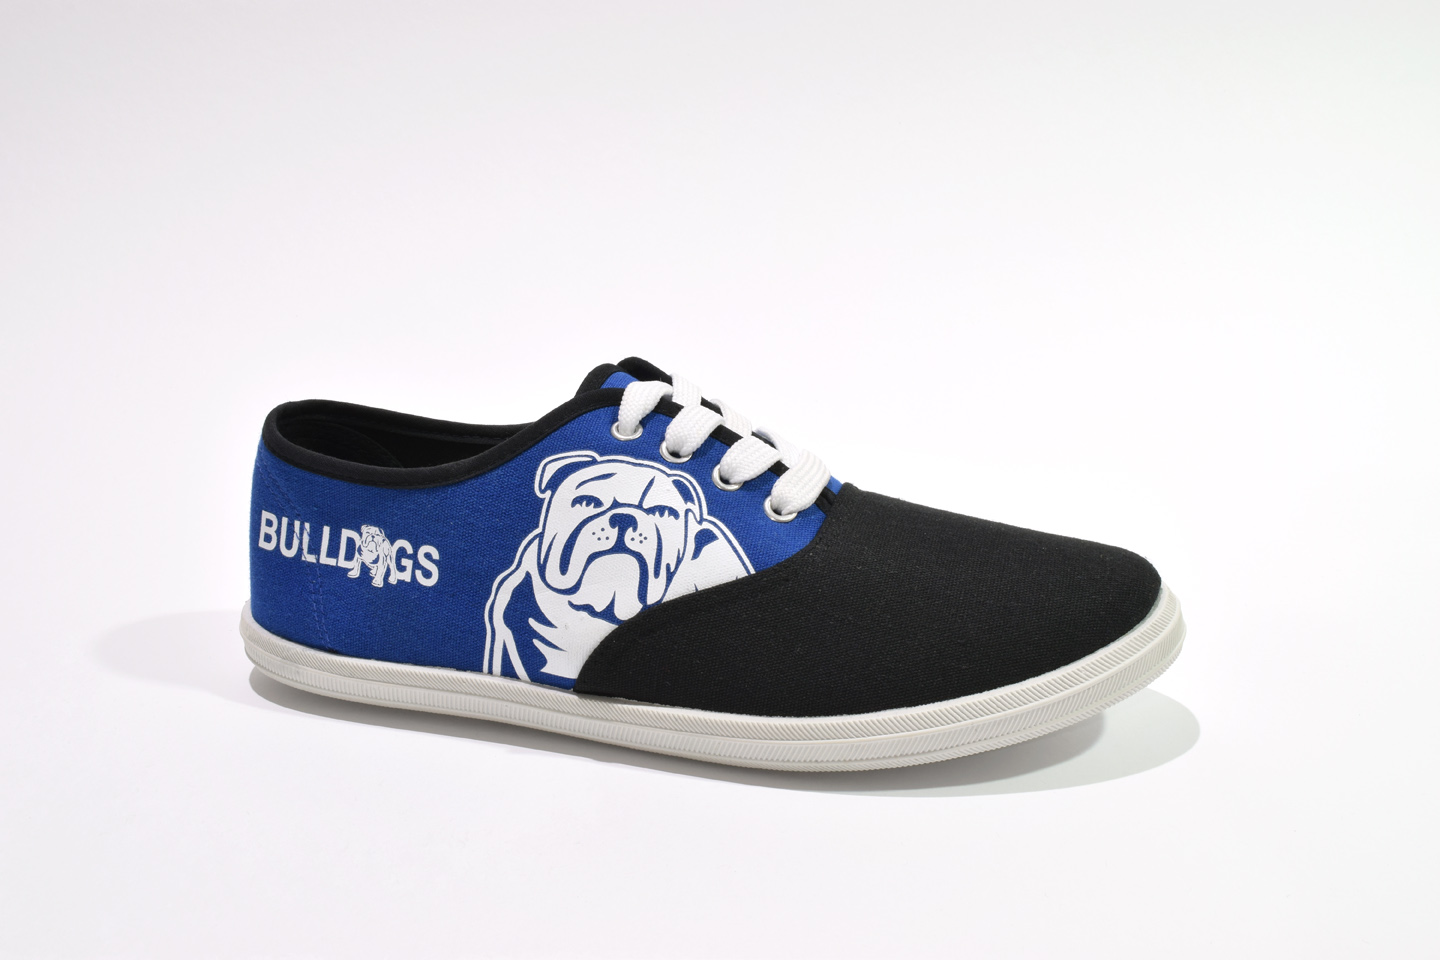 Bulldogs 4 copy